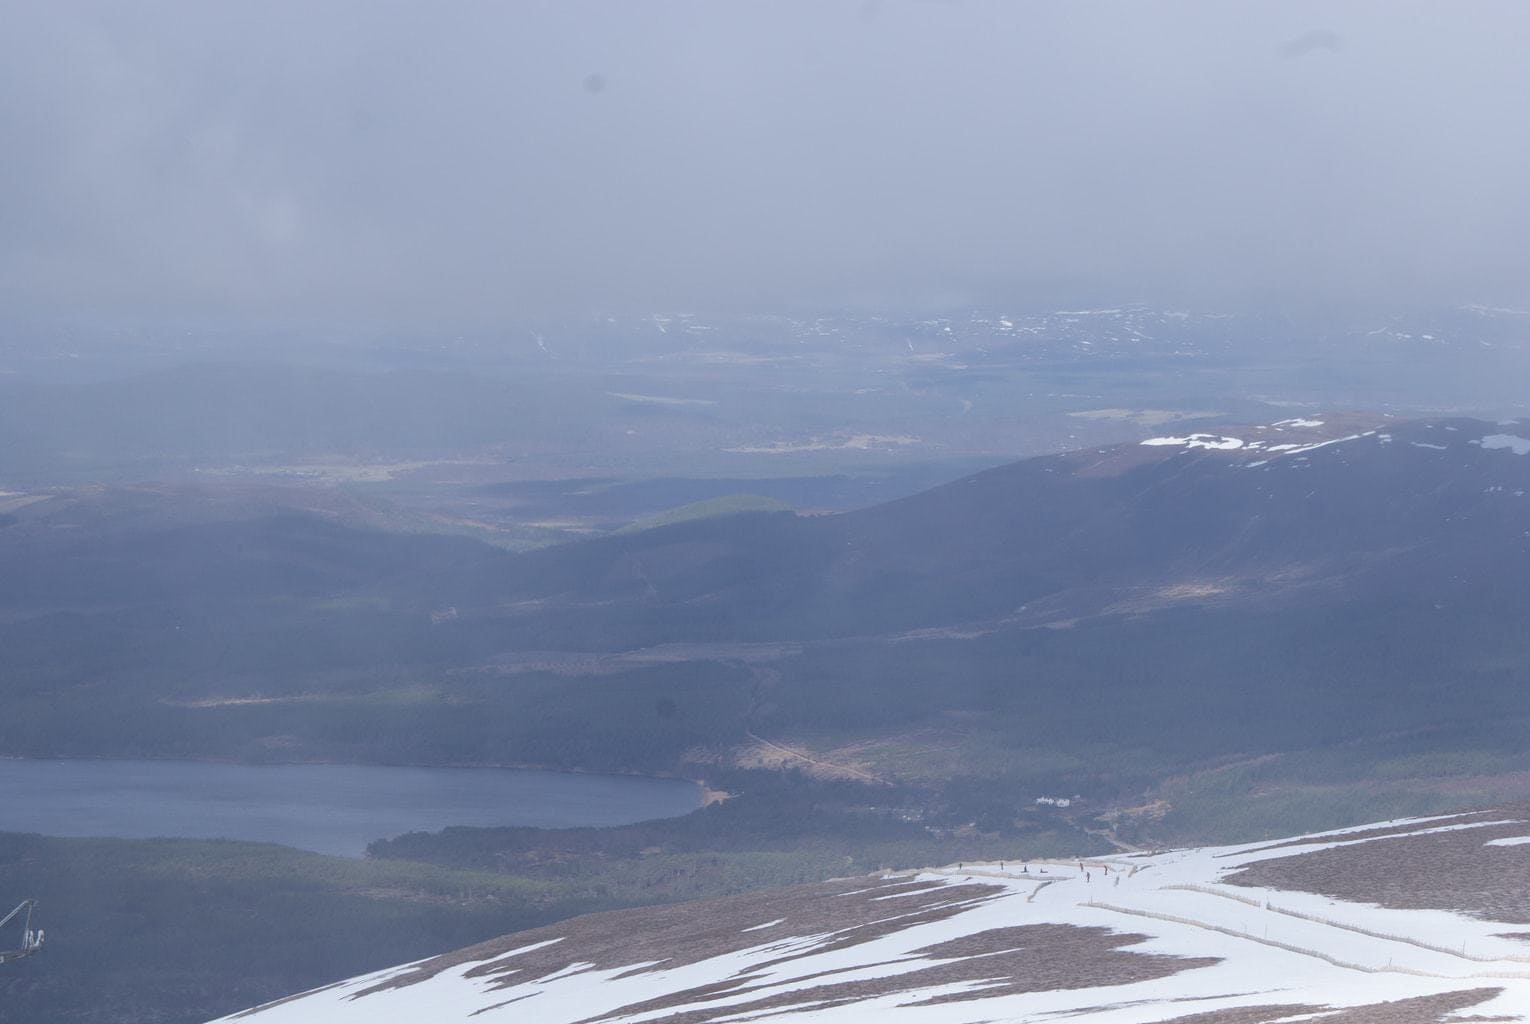 Aviemore at Christmas: The perfect family Christmas adventure?